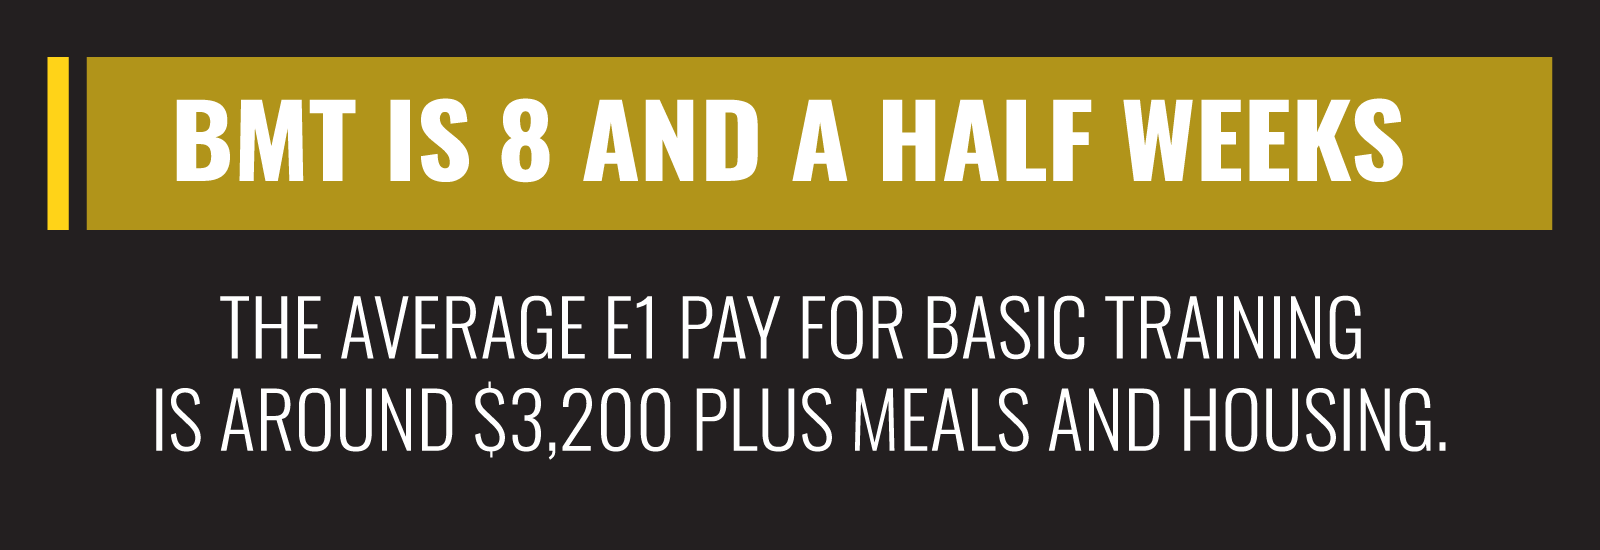 BMT is 8 and a half weeks, so the average E1 payment for basic training is around $3,200 plus meals and housing.